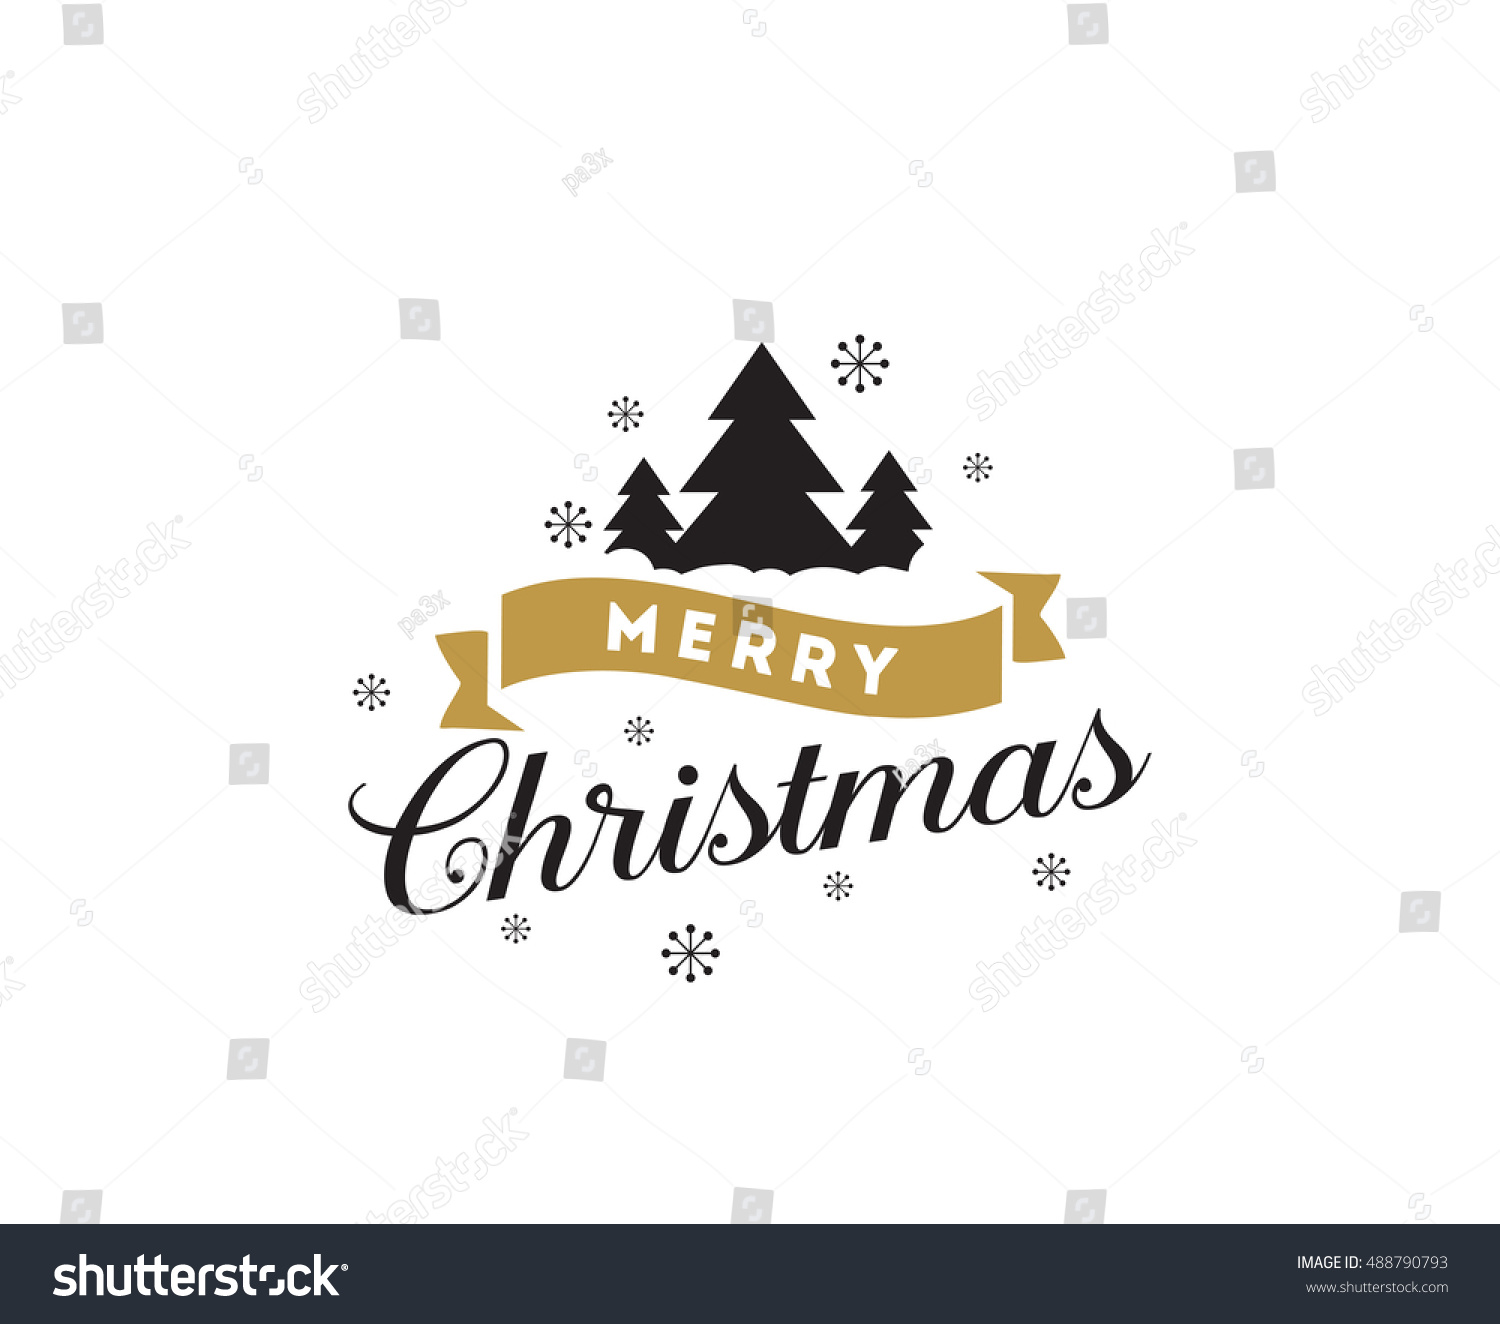 Merry christmas text design vector logo stock vector 488790793 merry christmas text design vector logo typography usable as banner greeting card kristyandbryce Image collections